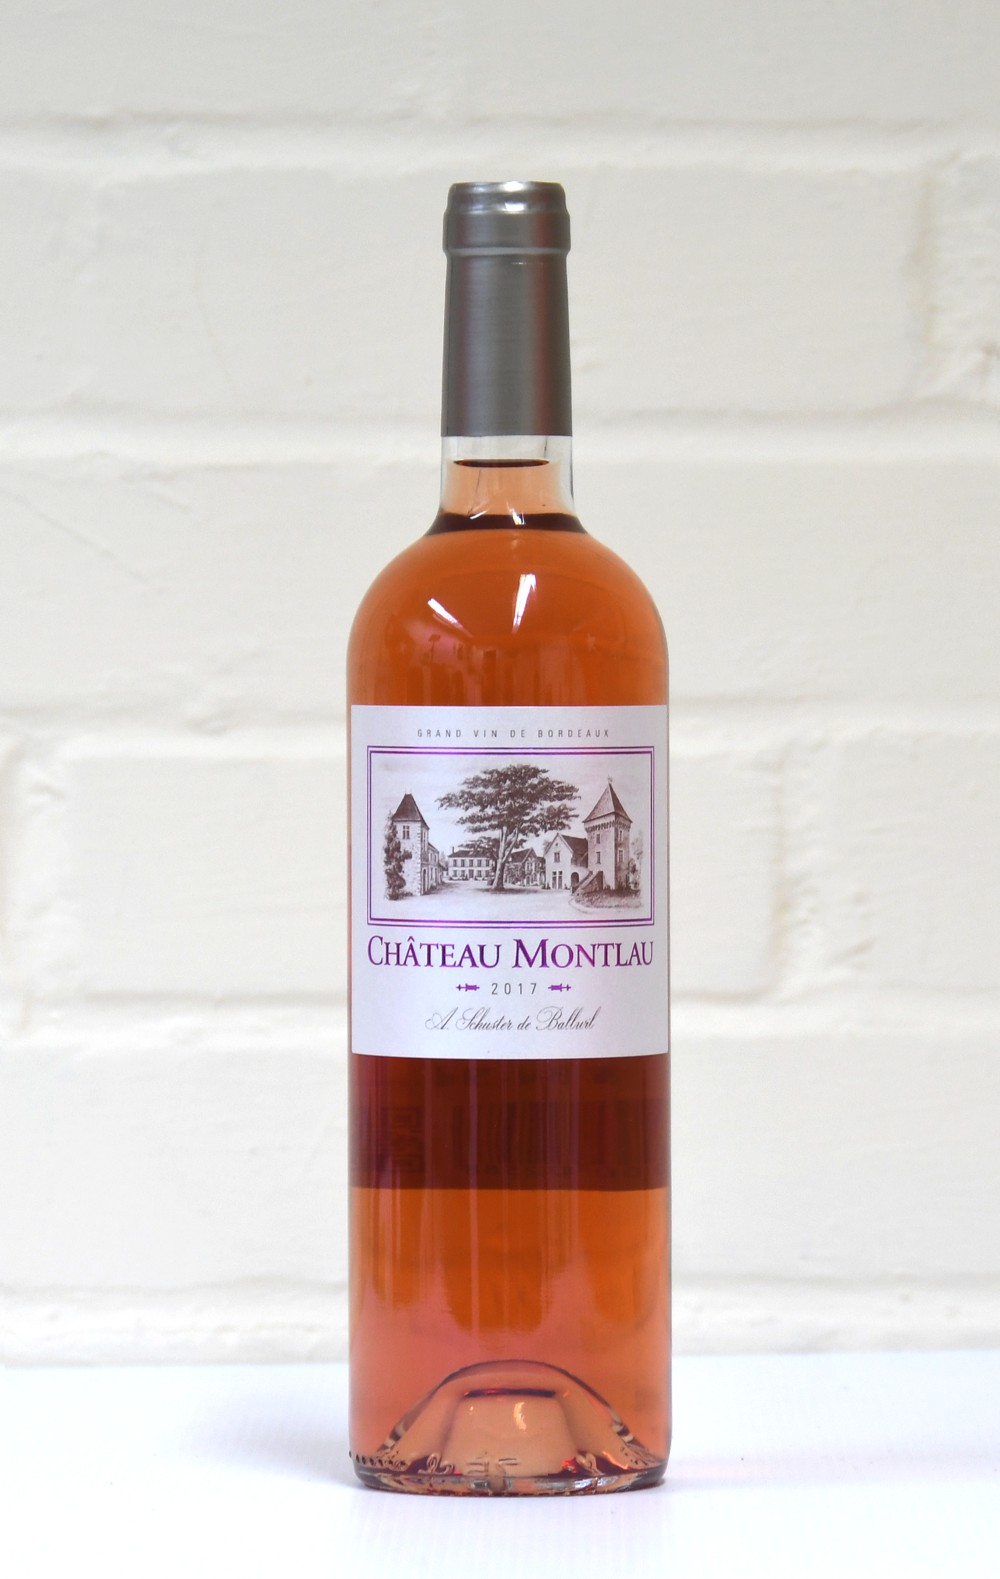 Try our Best rose wine 2018 from our selection of Rose wine brands and grapes including Zinfandel